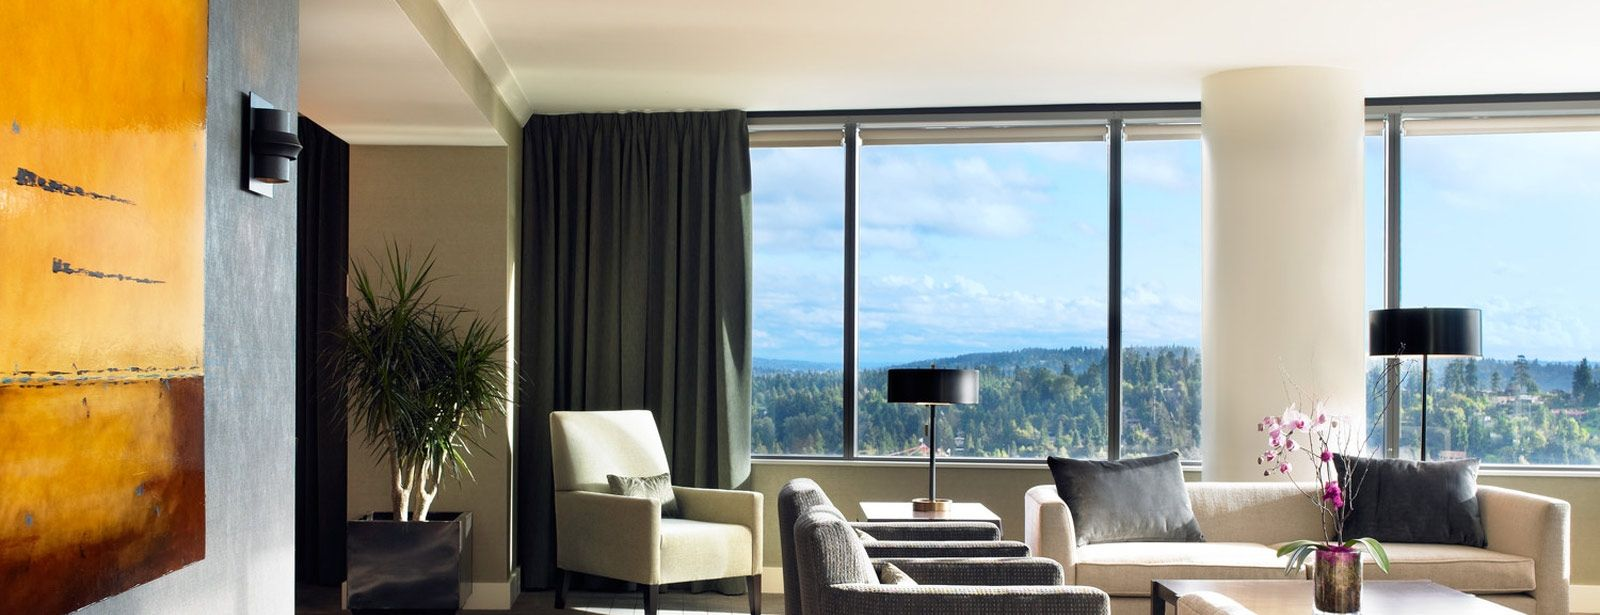 The Westin Bellevue Hotel - Luxury Suites